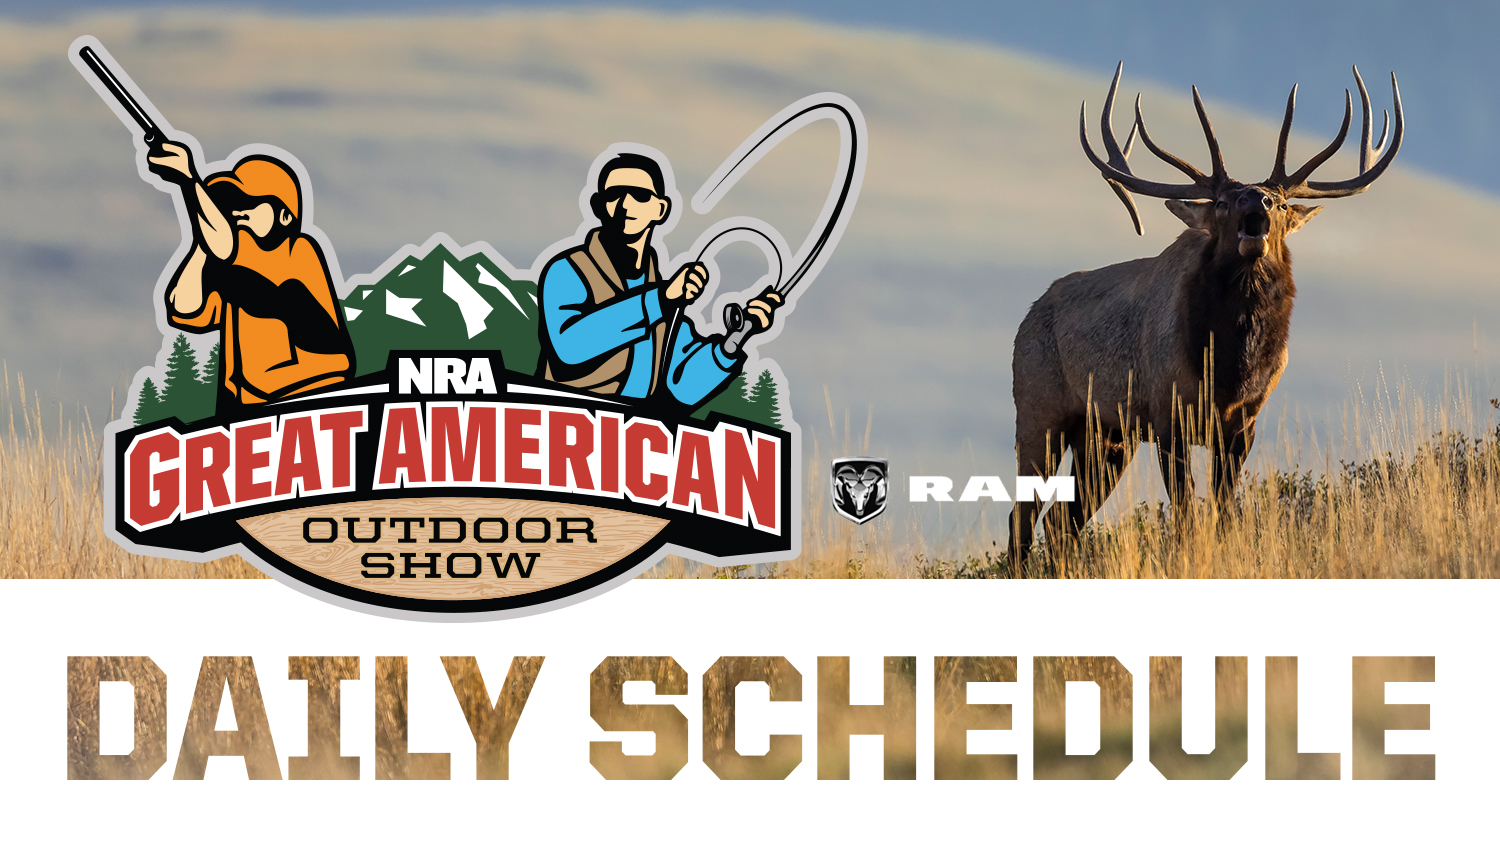 2019 Great American Outdoor Show Daily Schedule - Sunday, February 10